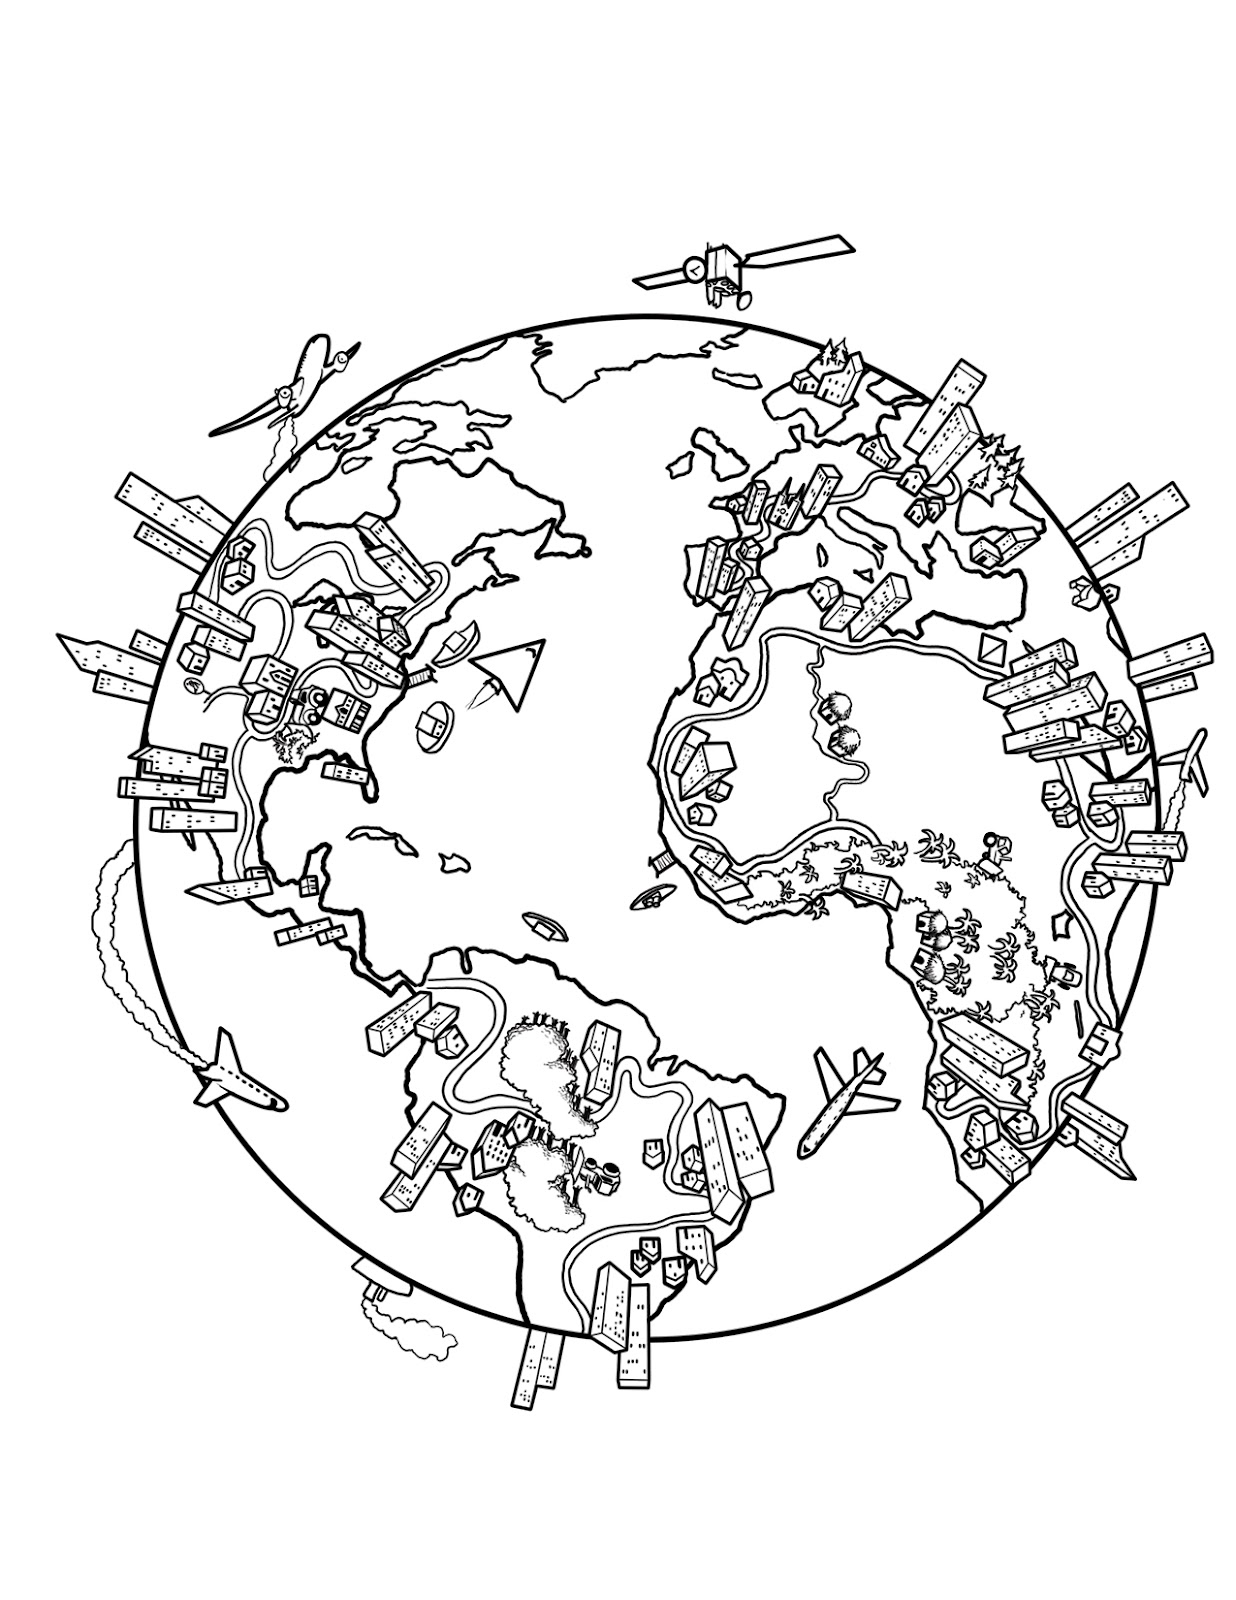 maps coloring pages treasure map 01 coloring page coloring page central maps coloring pages